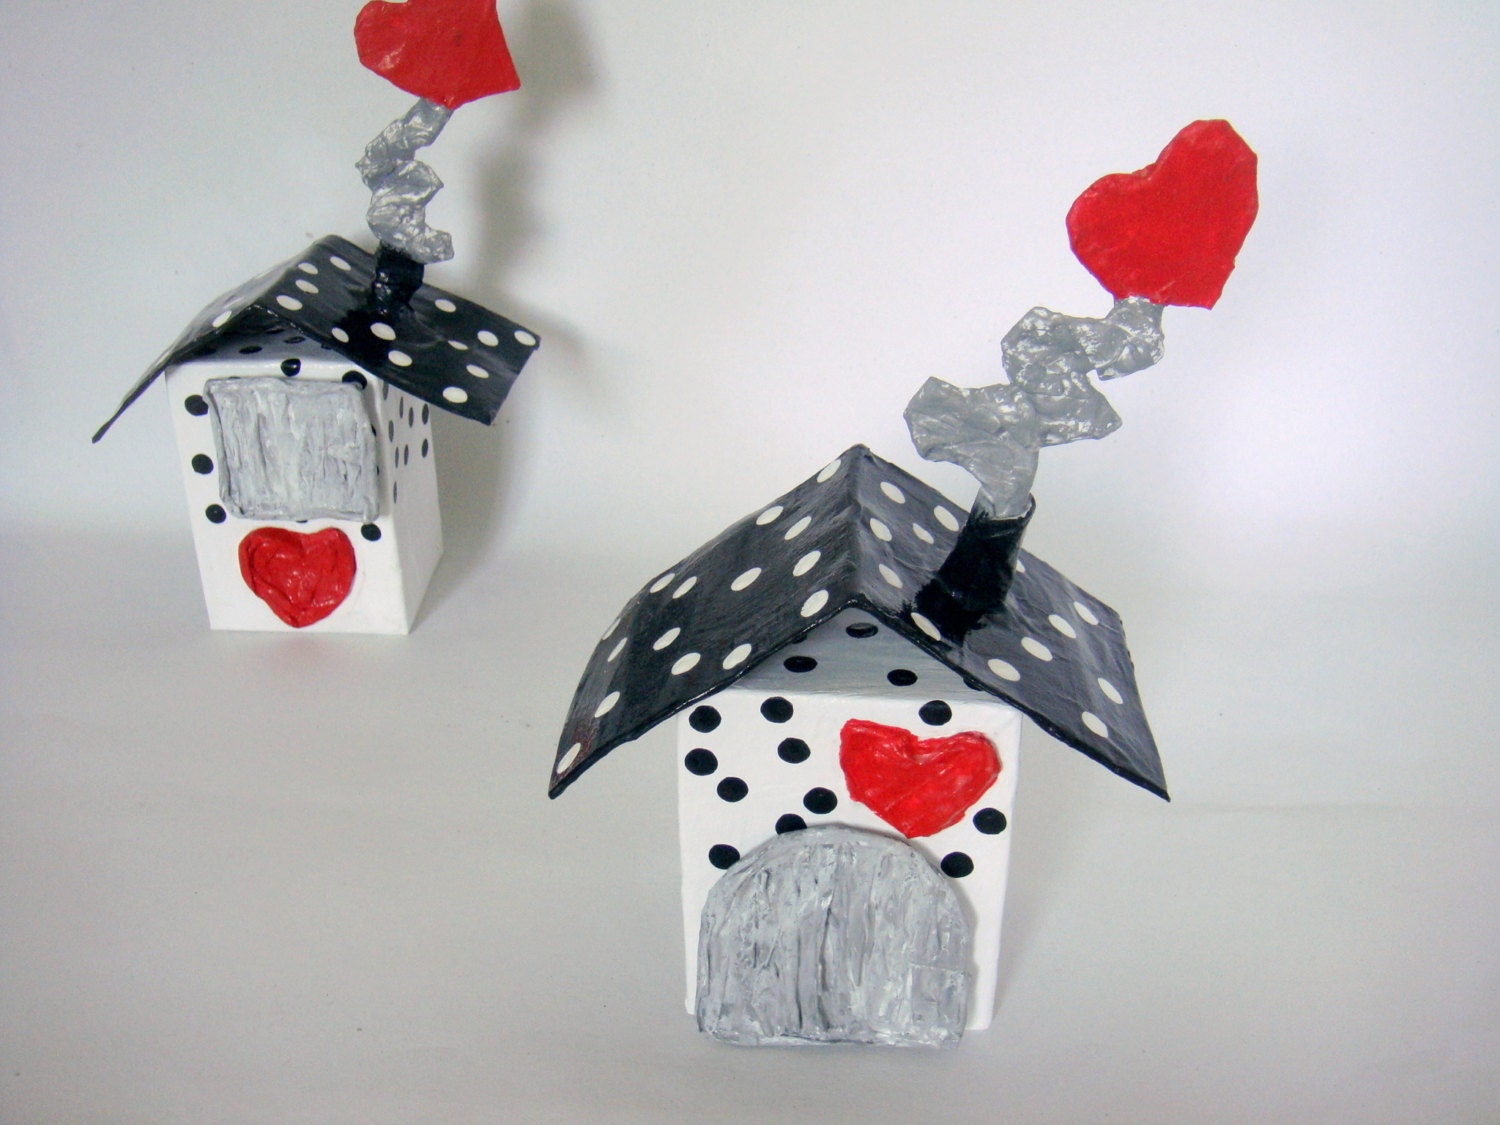 free shipping, papier mache money box, the love house, new home, wedding gift, red hearts, black, white, polka dots, piggy bank,  valentine - papiera